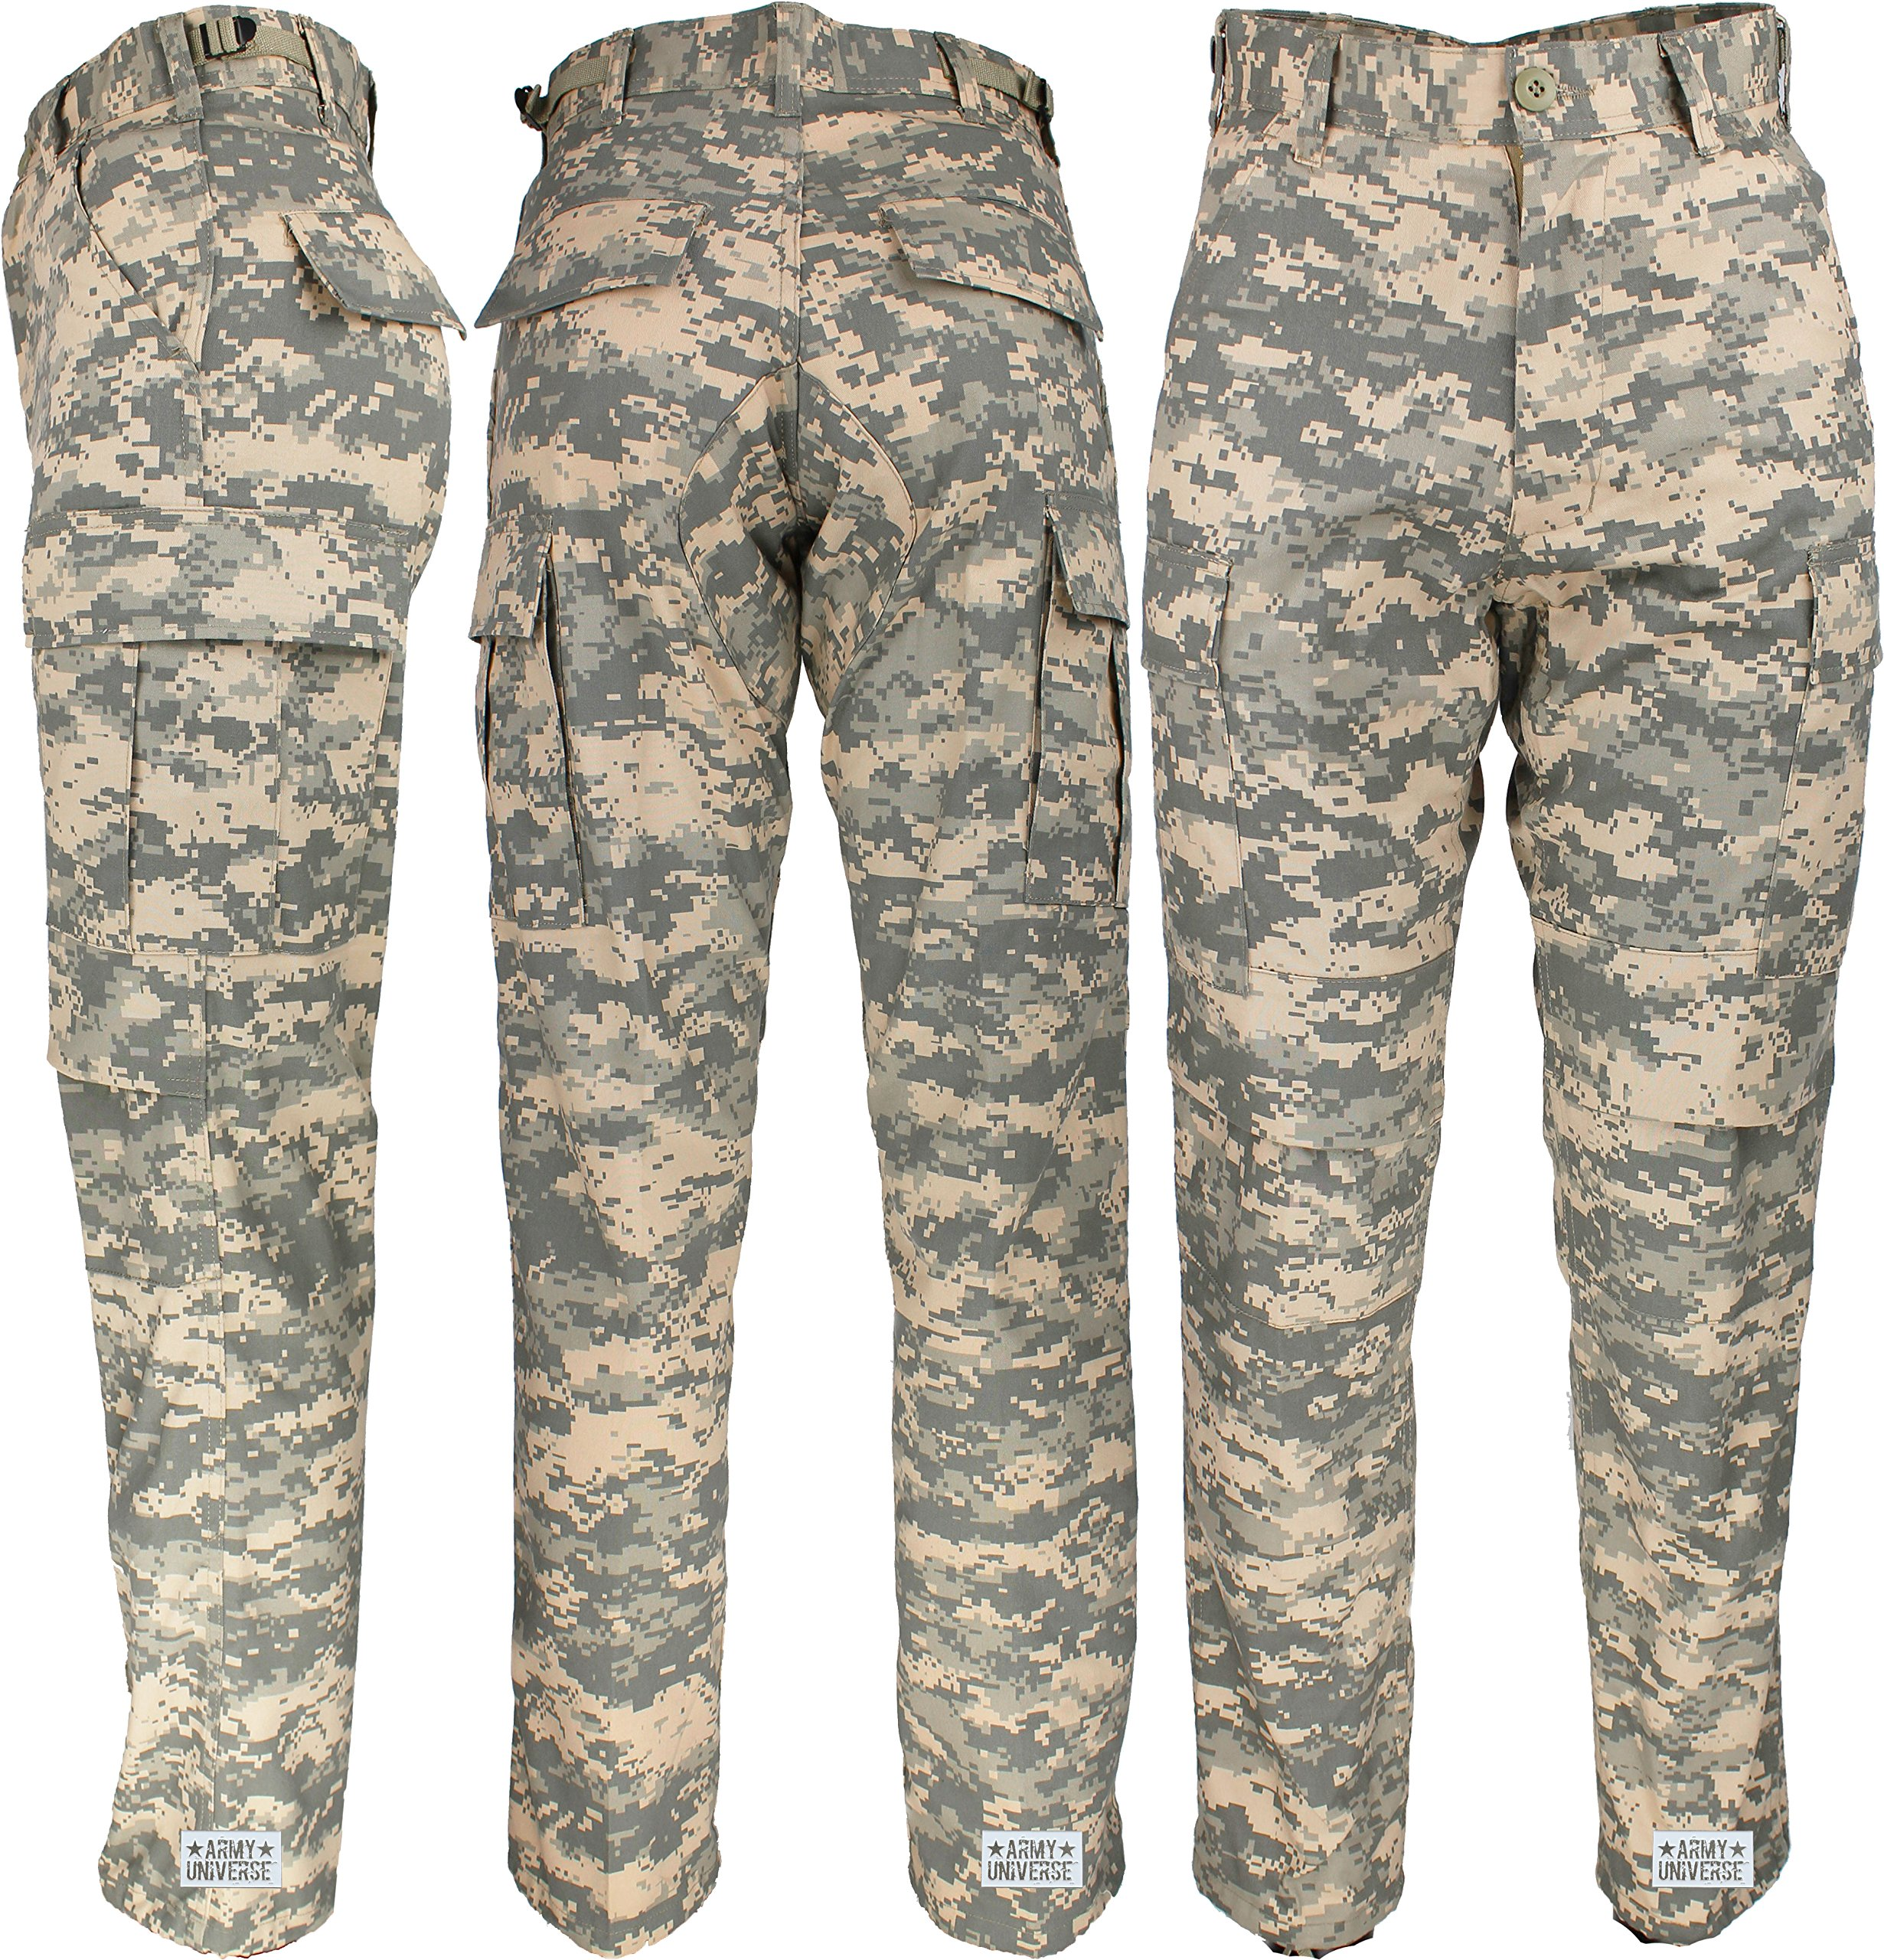 Army Universe Mens ACU Digital Camouflage Military BDU Cargo Pants with Pin  (W 31-35 - I 29.5-32.5) M - 8685-M   Pants   Clothing 45dfa166163